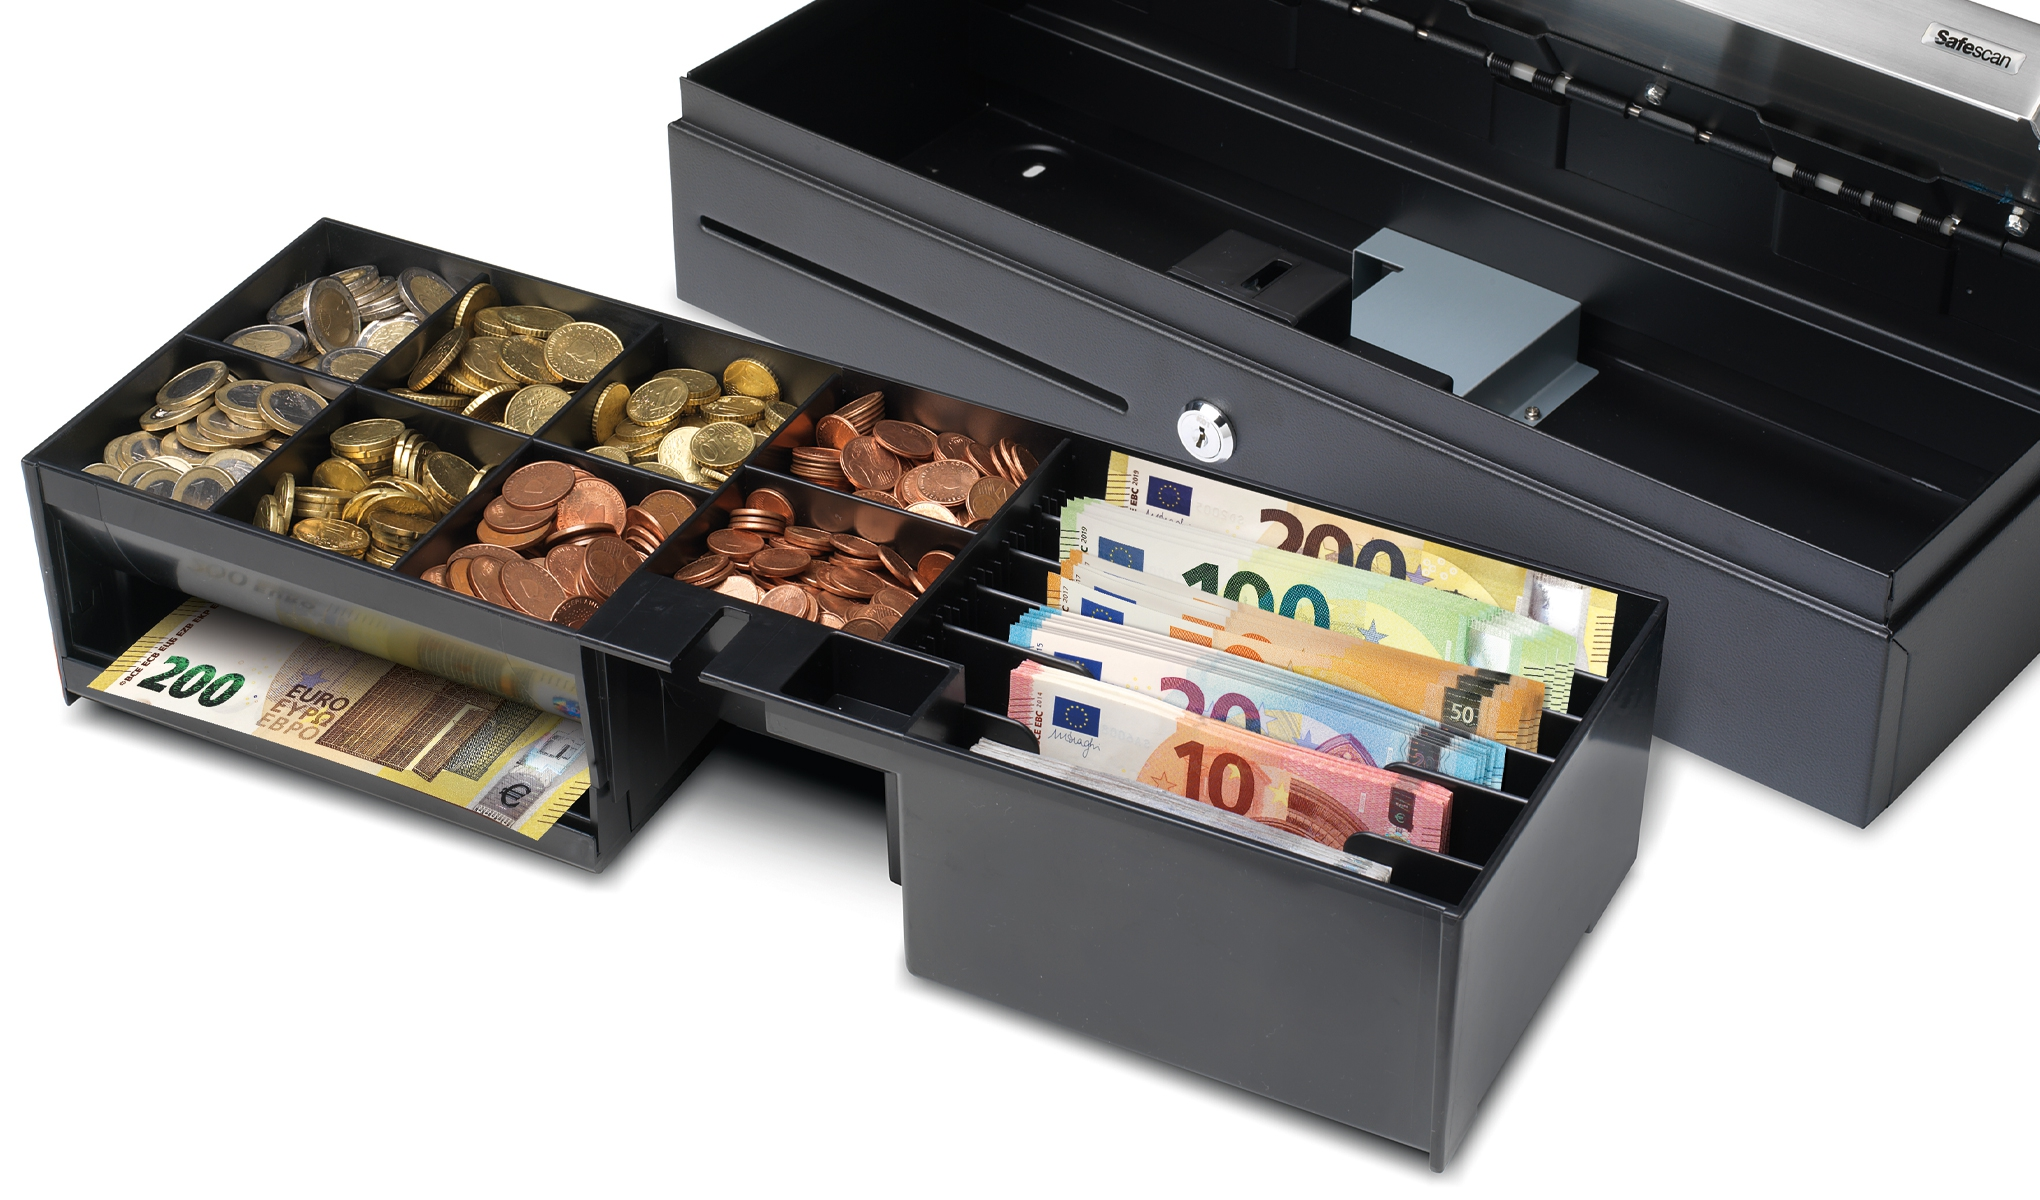 coins drawers footage dispensing register change prevstill cash bills money shop video drawer customer business stock